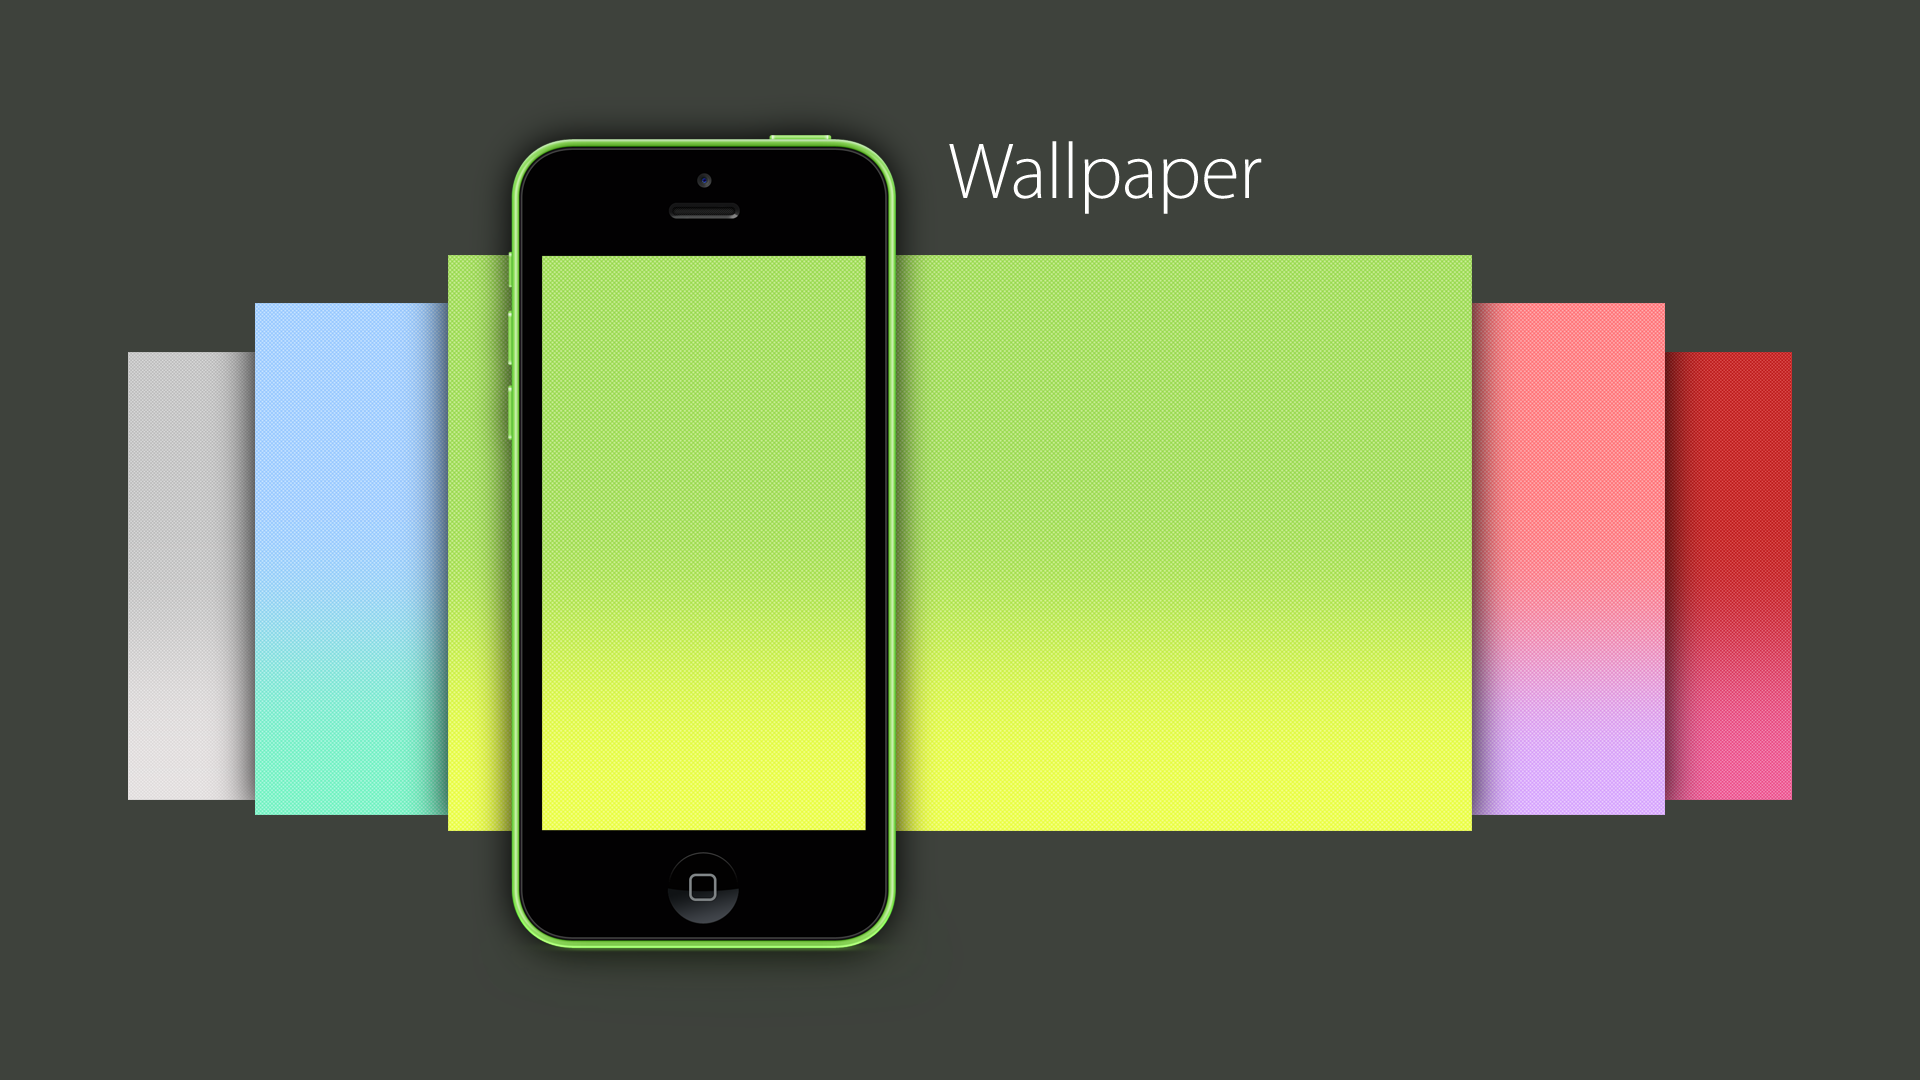 Cool Wallpapers For Iphone 5c Wallpaper 1920x1080